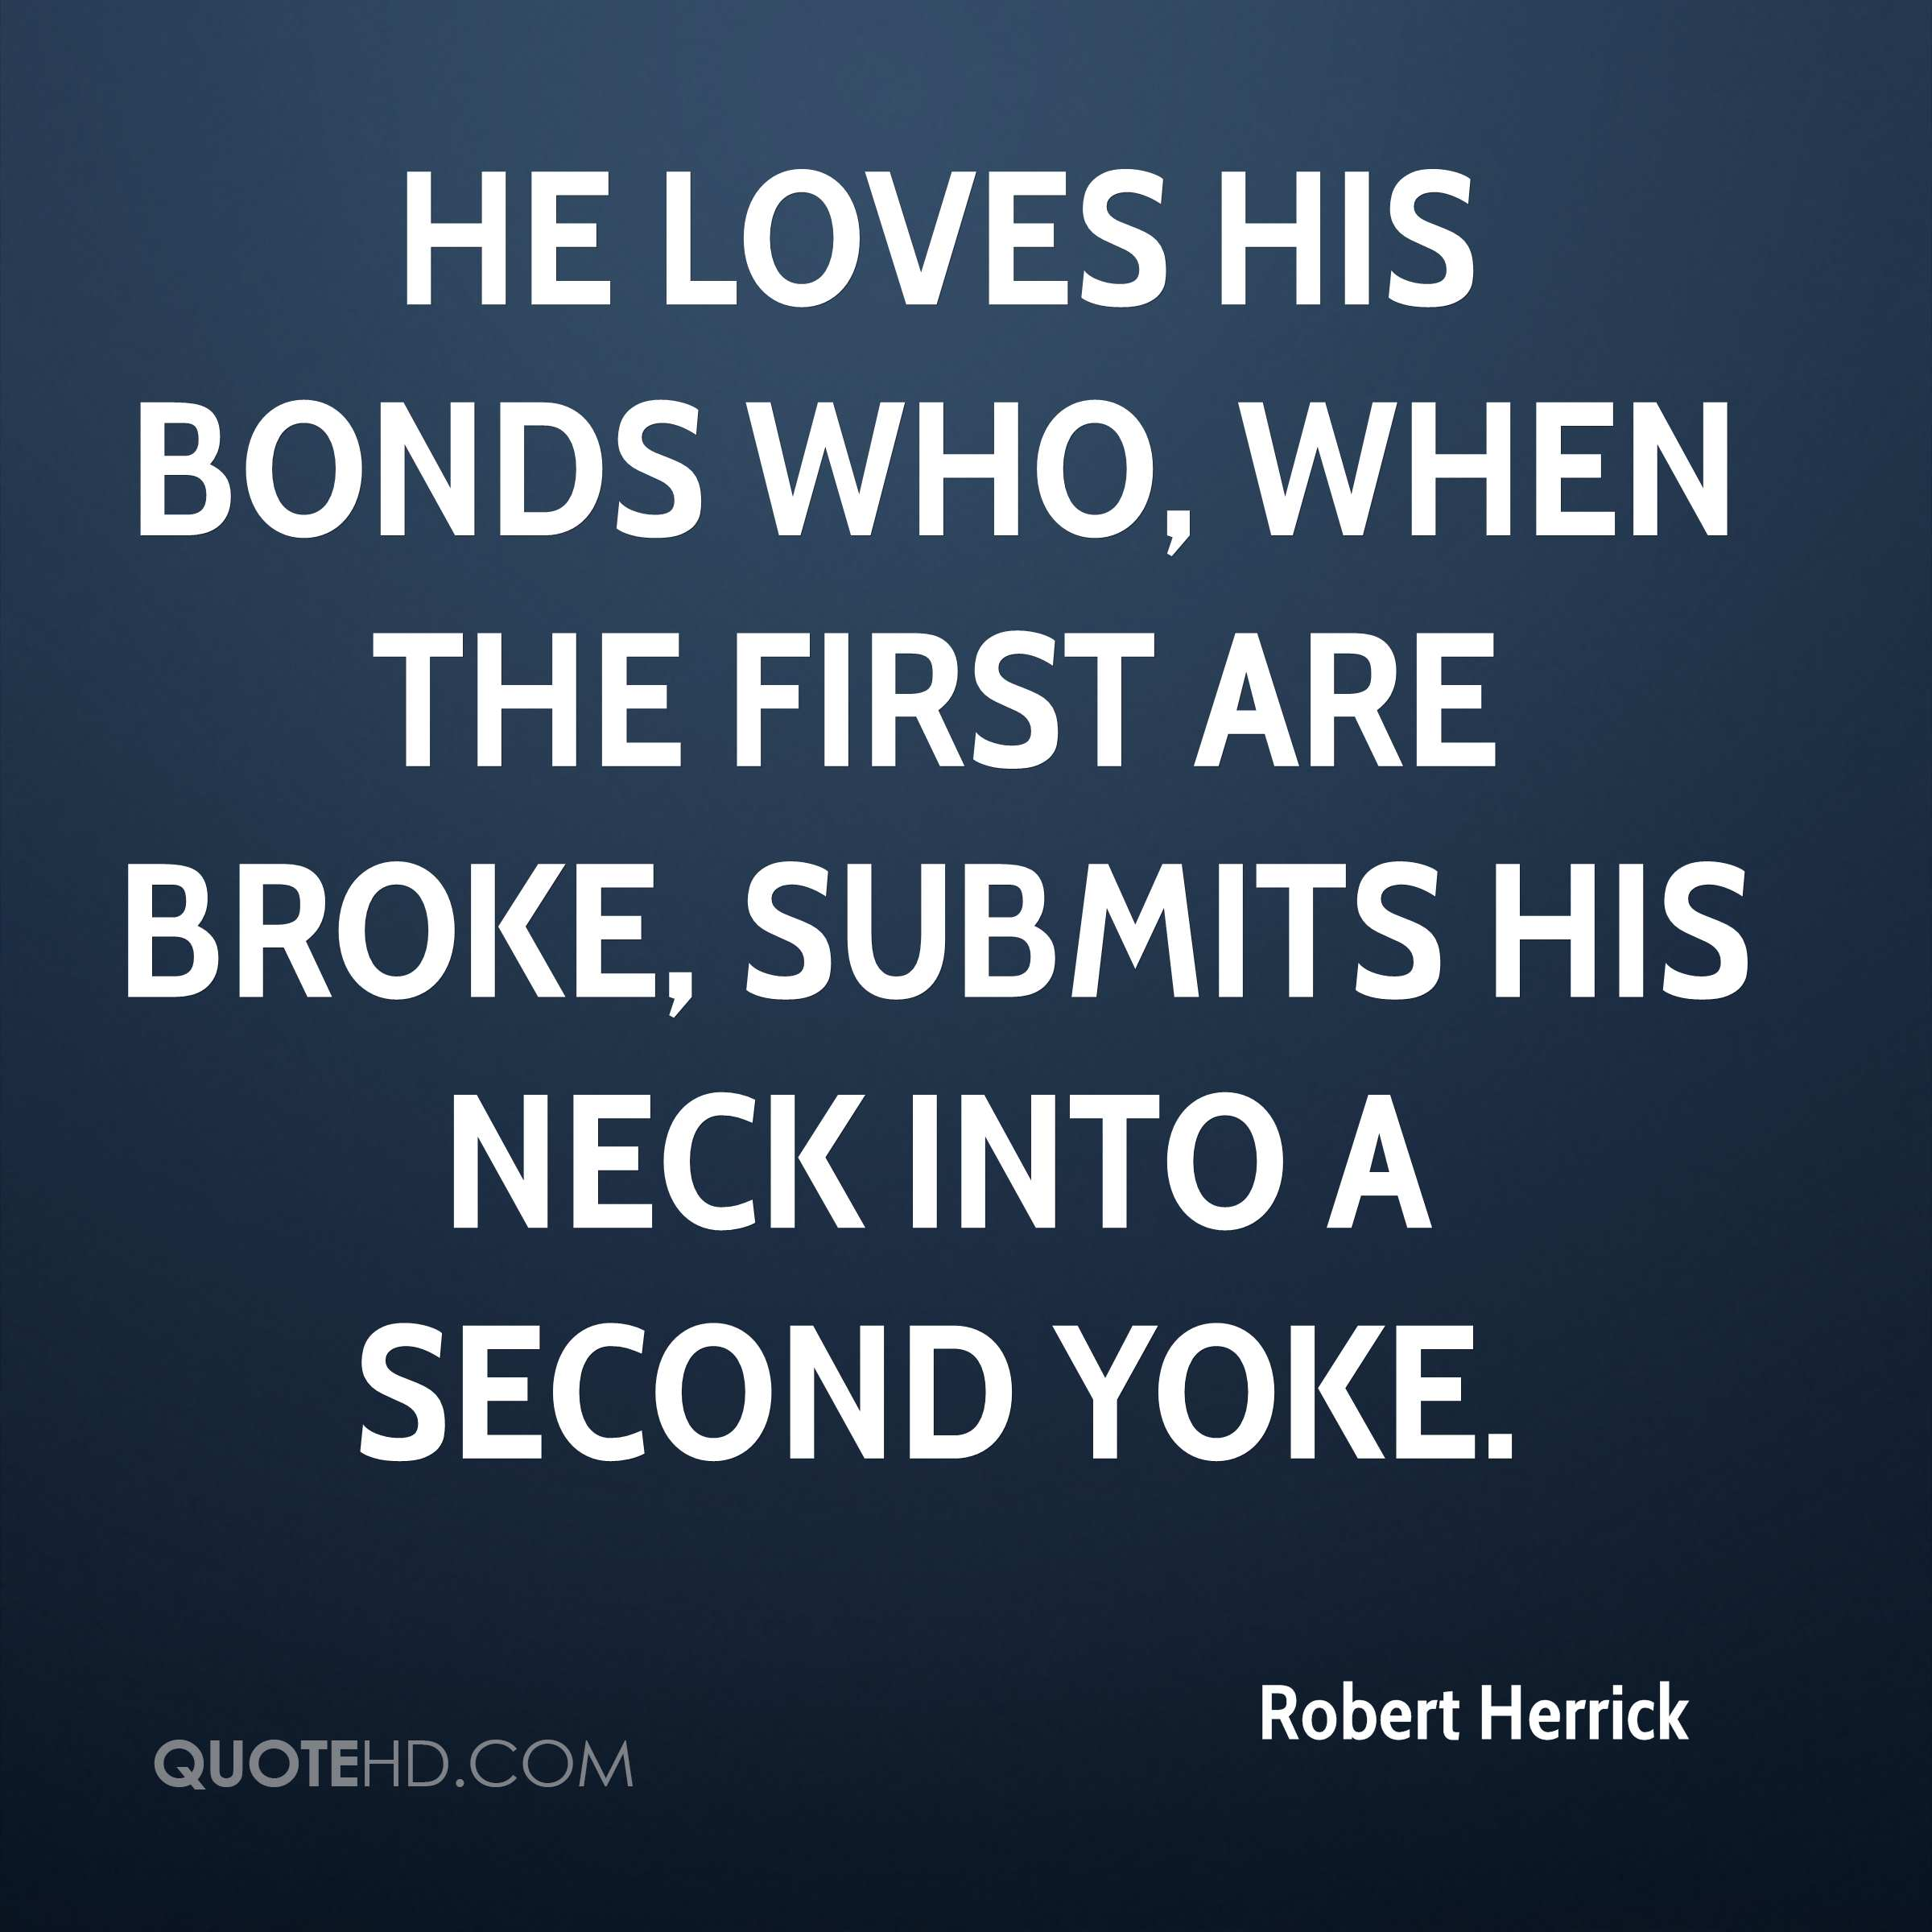 He loves his bonds who, when the first are broke, Submits his neck into a second yoke.